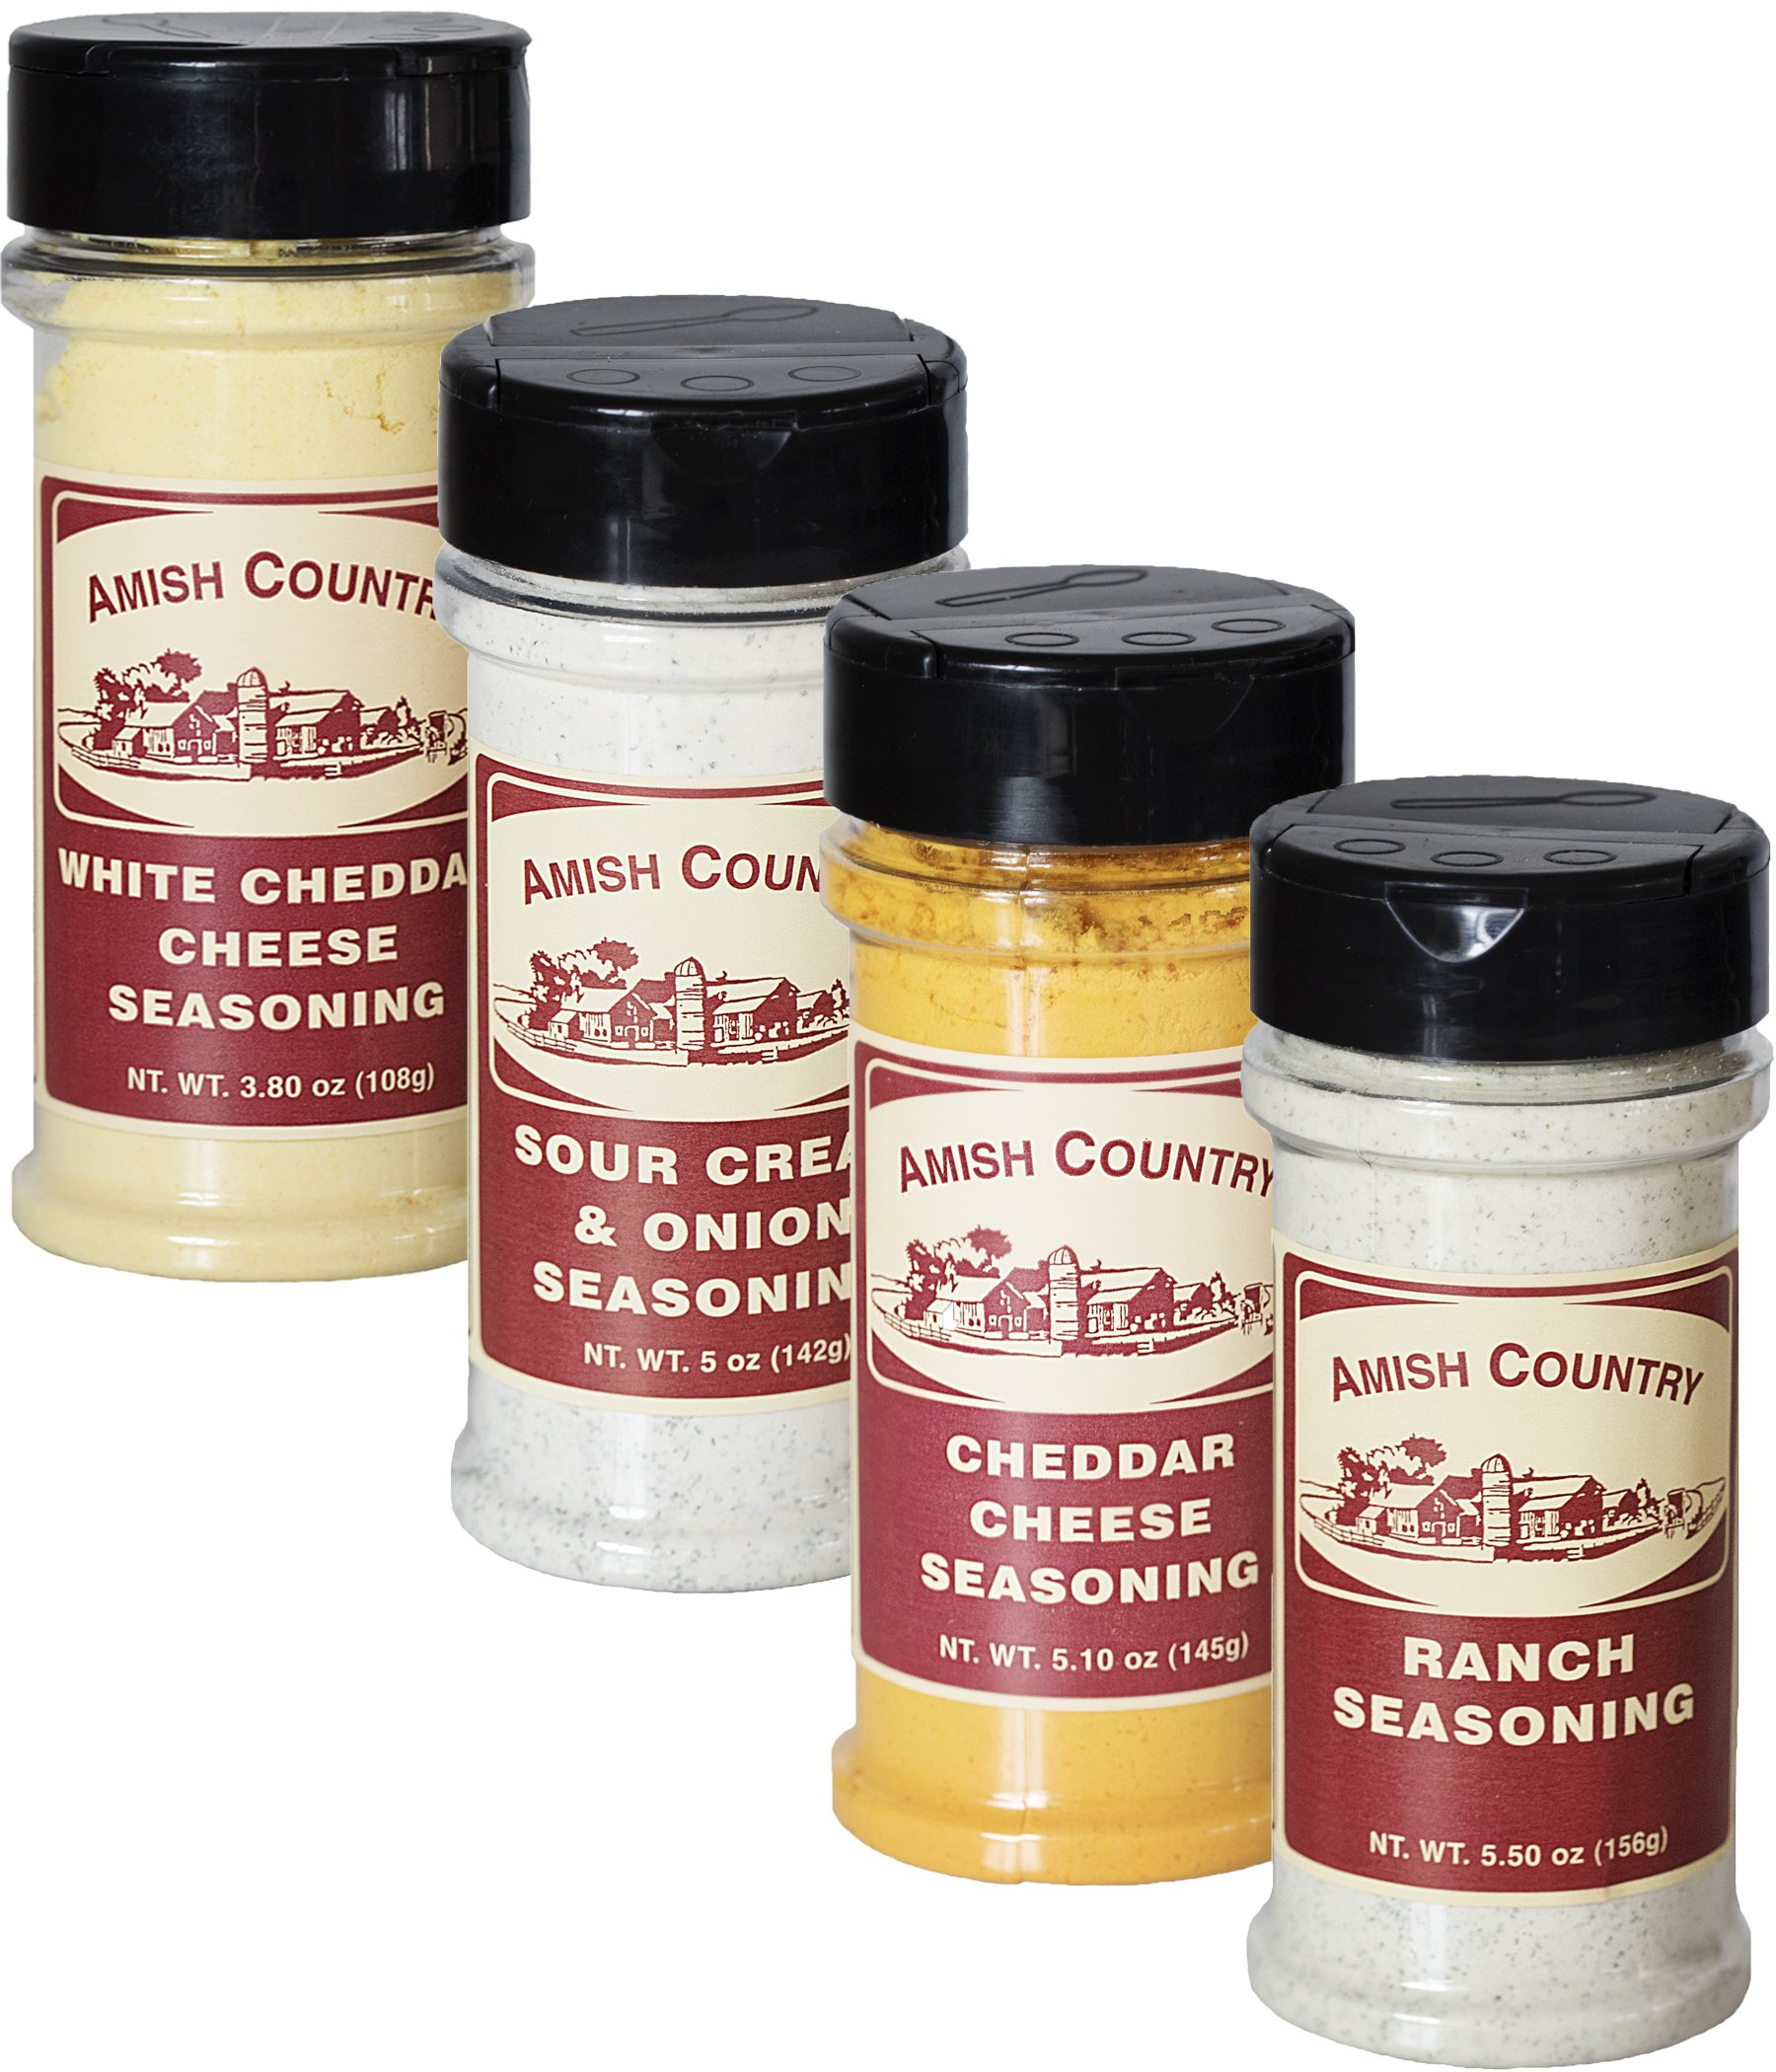 Amish Country Popcorn   Seasoning Variety Pack   4 Bottles   White Cheddar - Cheddar Cheese - Sour Cream & Onion -Ranch   Nut Free   Old Fashioned with Recipe Guide